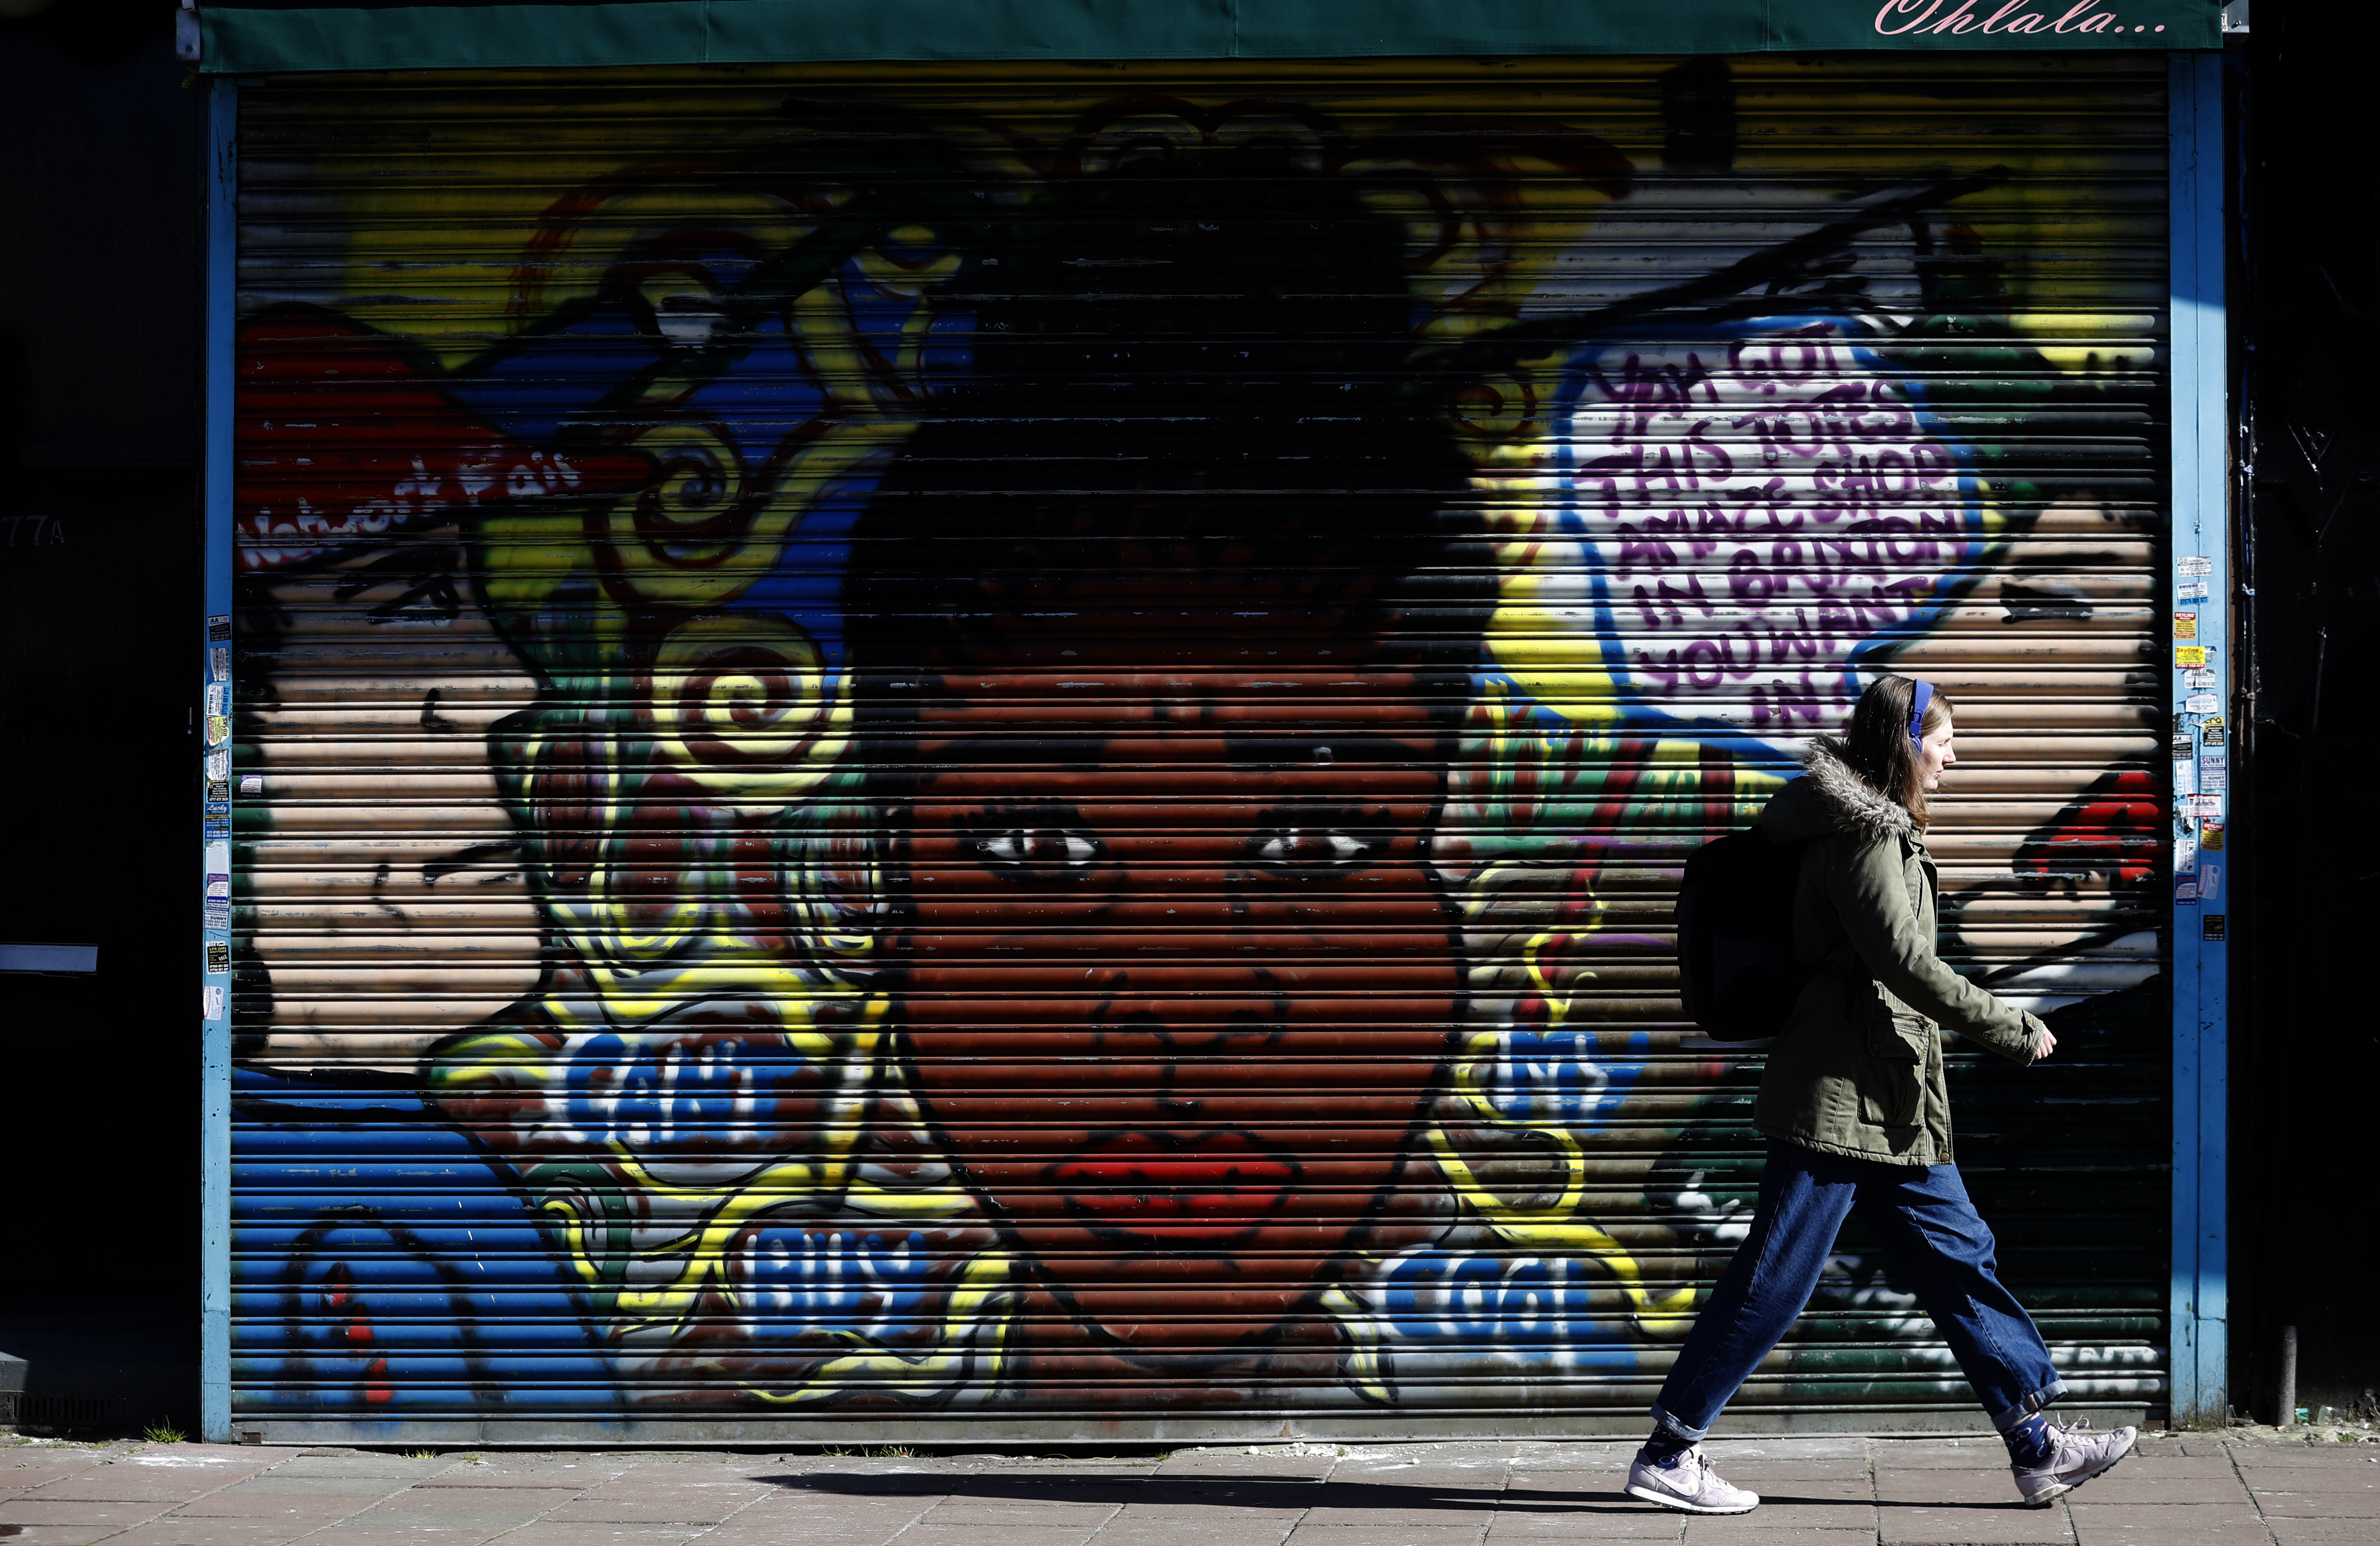 <p>A woman walks past a mural in Brixton in London, Tuesday, March 9, 2021. (AP Photo/Alastair Grant)</p>